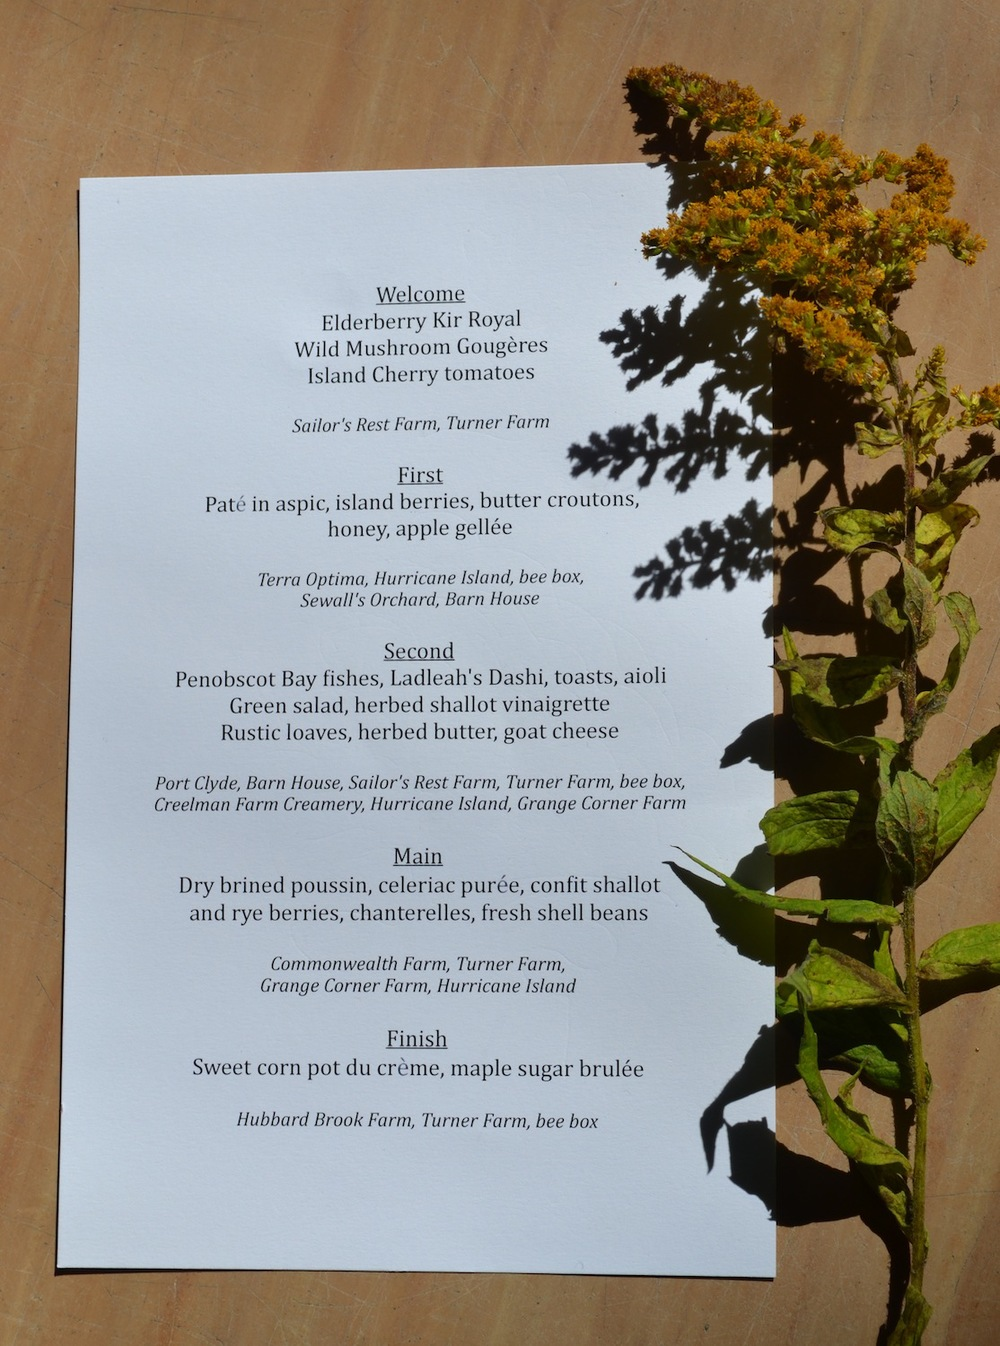 The menu from the evening